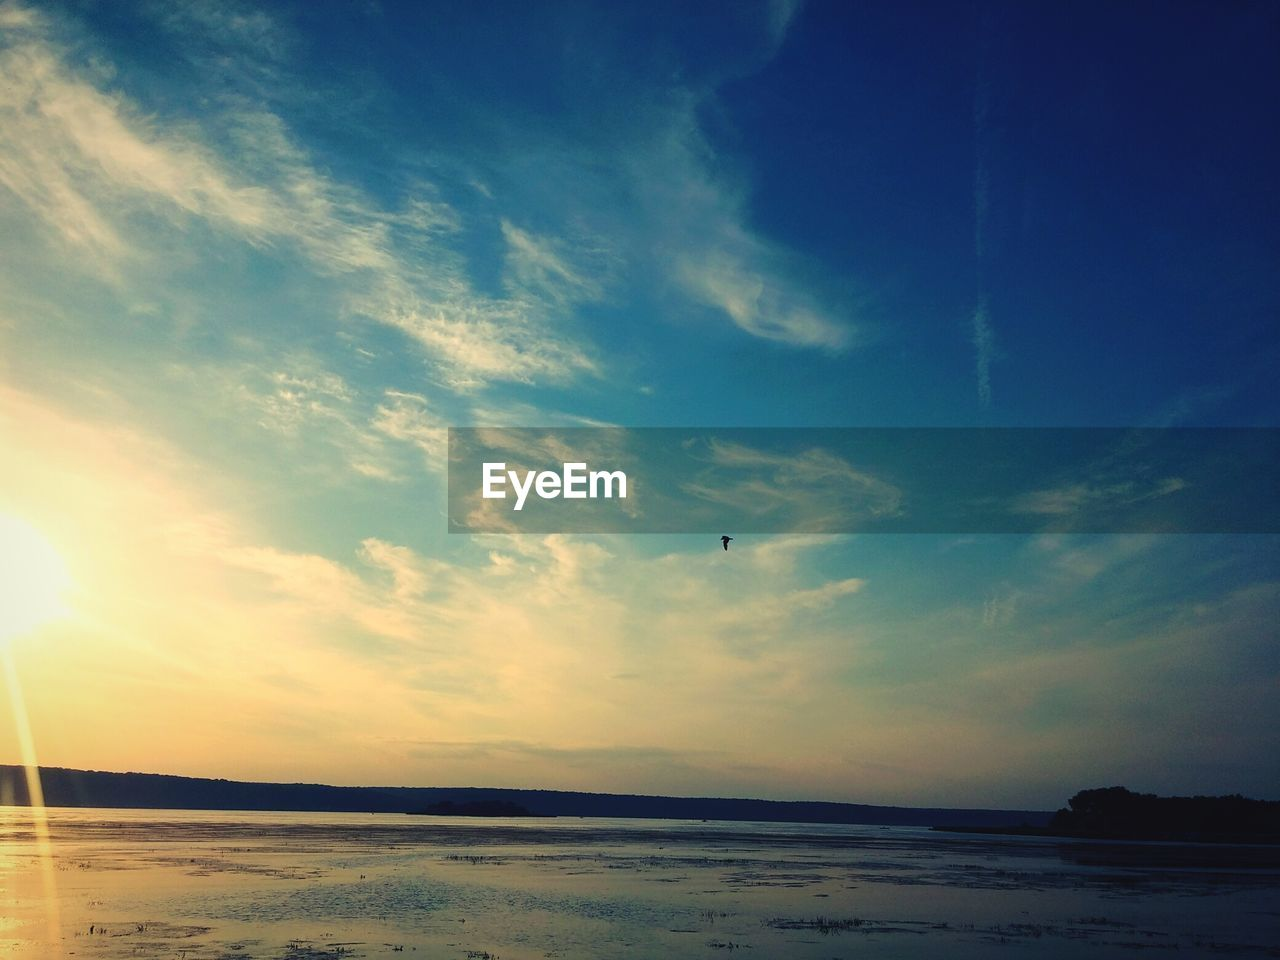 sky, sea, water, scenics, tranquil scene, tranquility, beauty in nature, nature, sunset, beach, outdoors, no people, cloud - sky, horizon over water, landscape, day